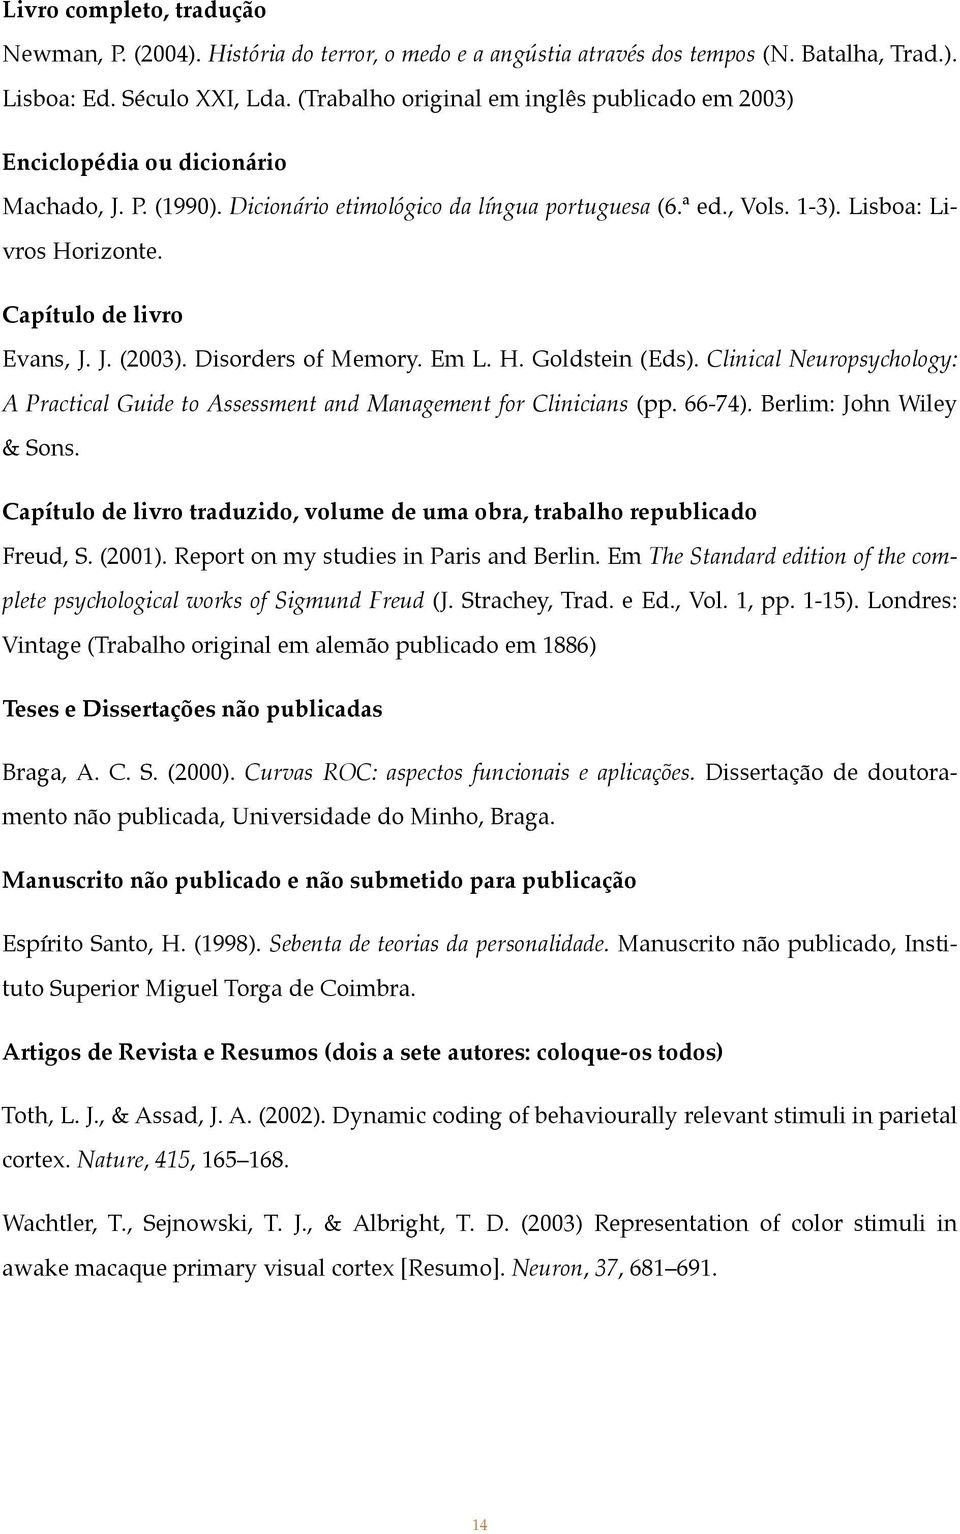 Capítulo de livro Evans, J. J. (2003). Disorders of Memory. Em L. H. Goldstein (Eds). Clinical Neuropsychology: A Practical Guide to Assessment and Management for Clinicians (pp. 66-74).